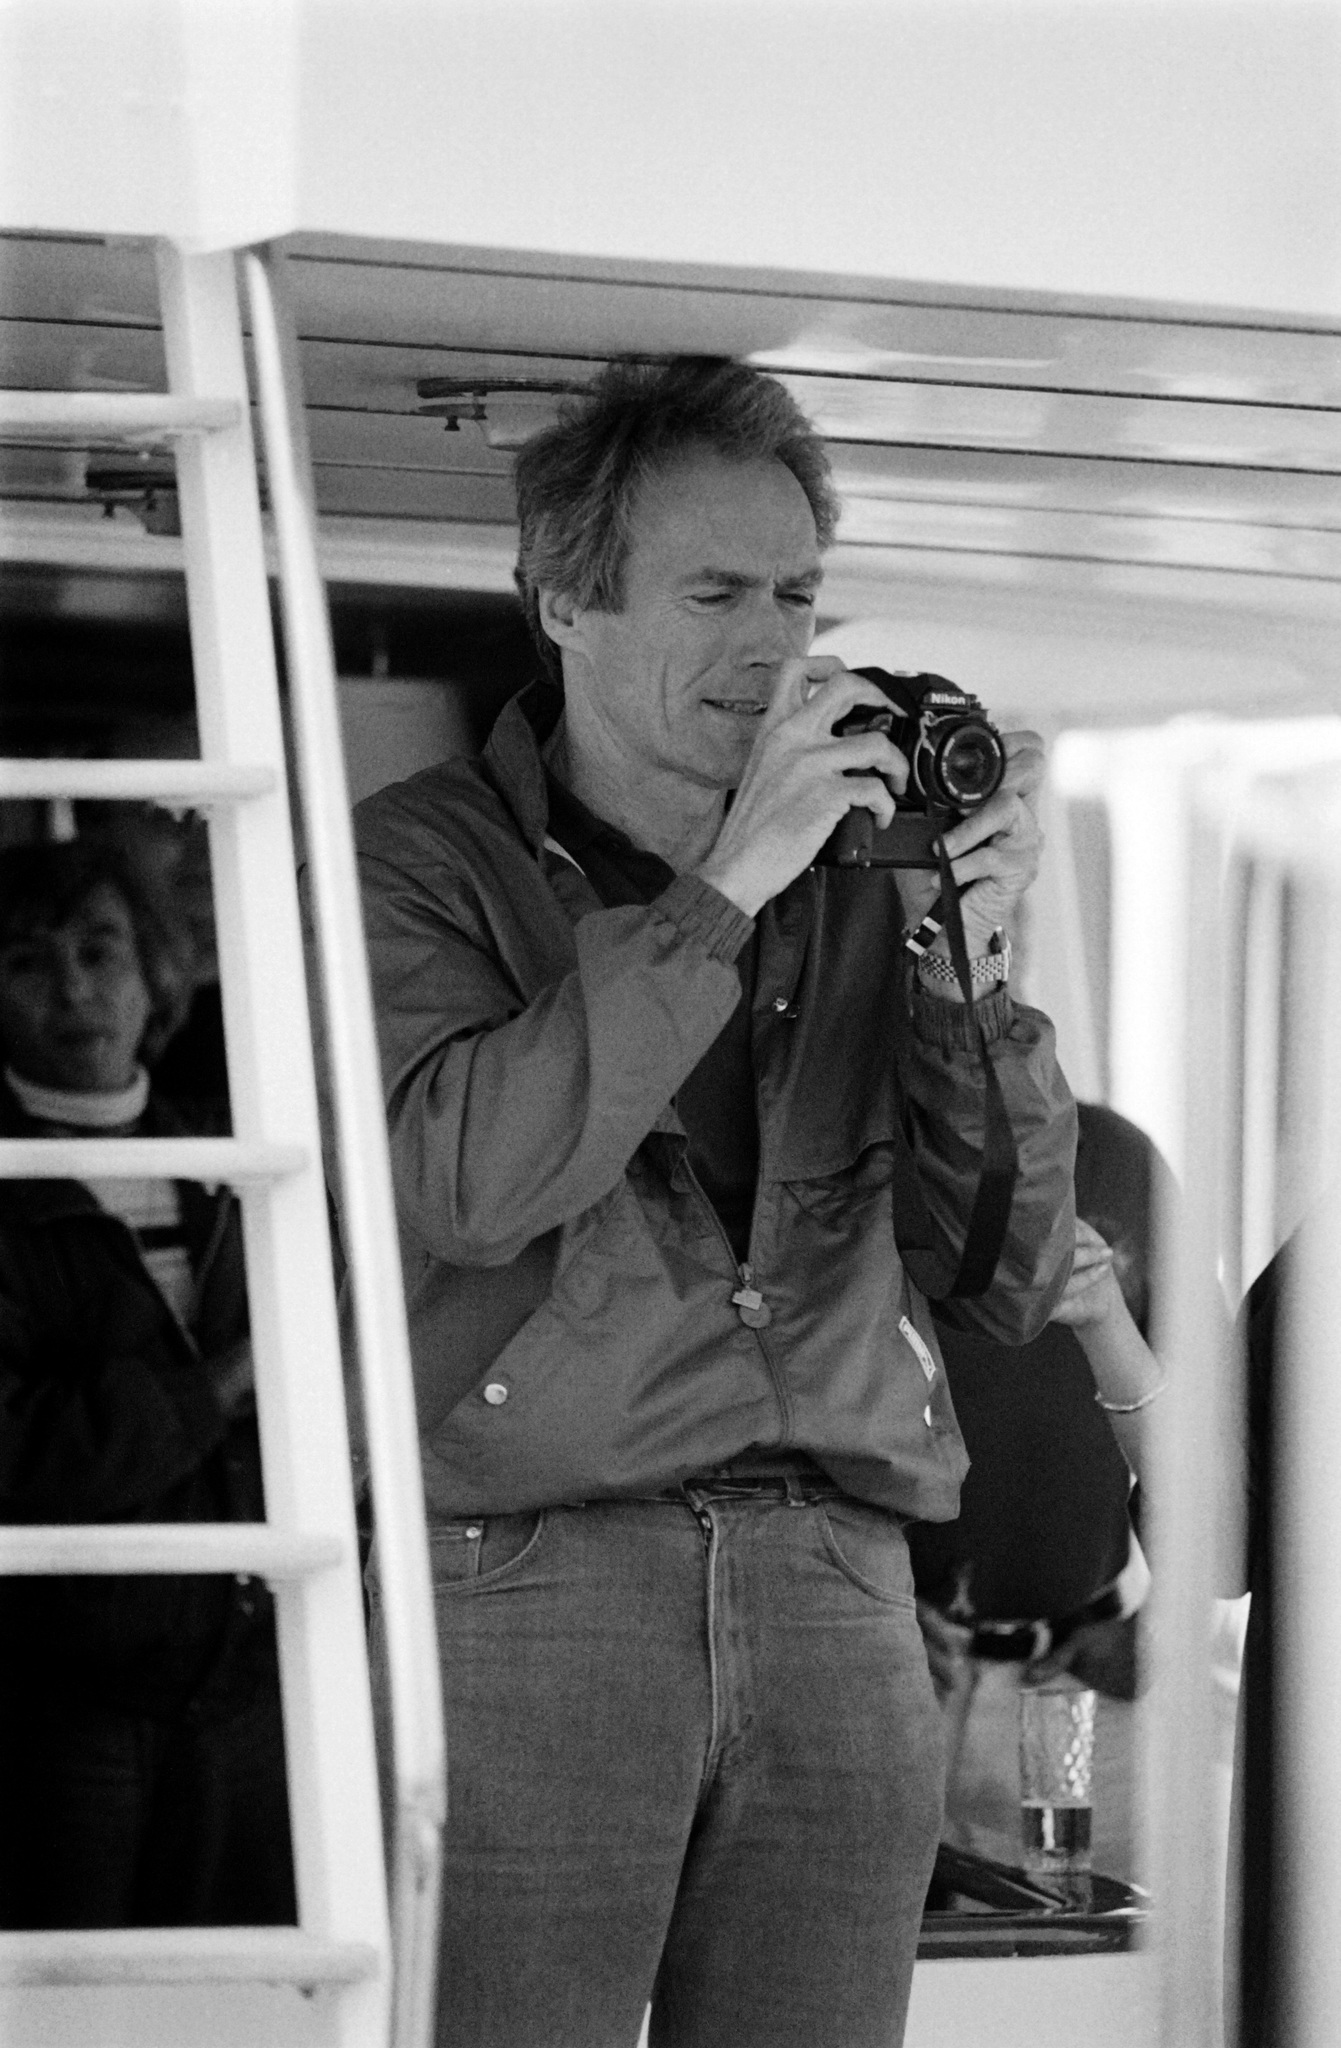 Clint Eastwood at an event for Pale Rider (1985)